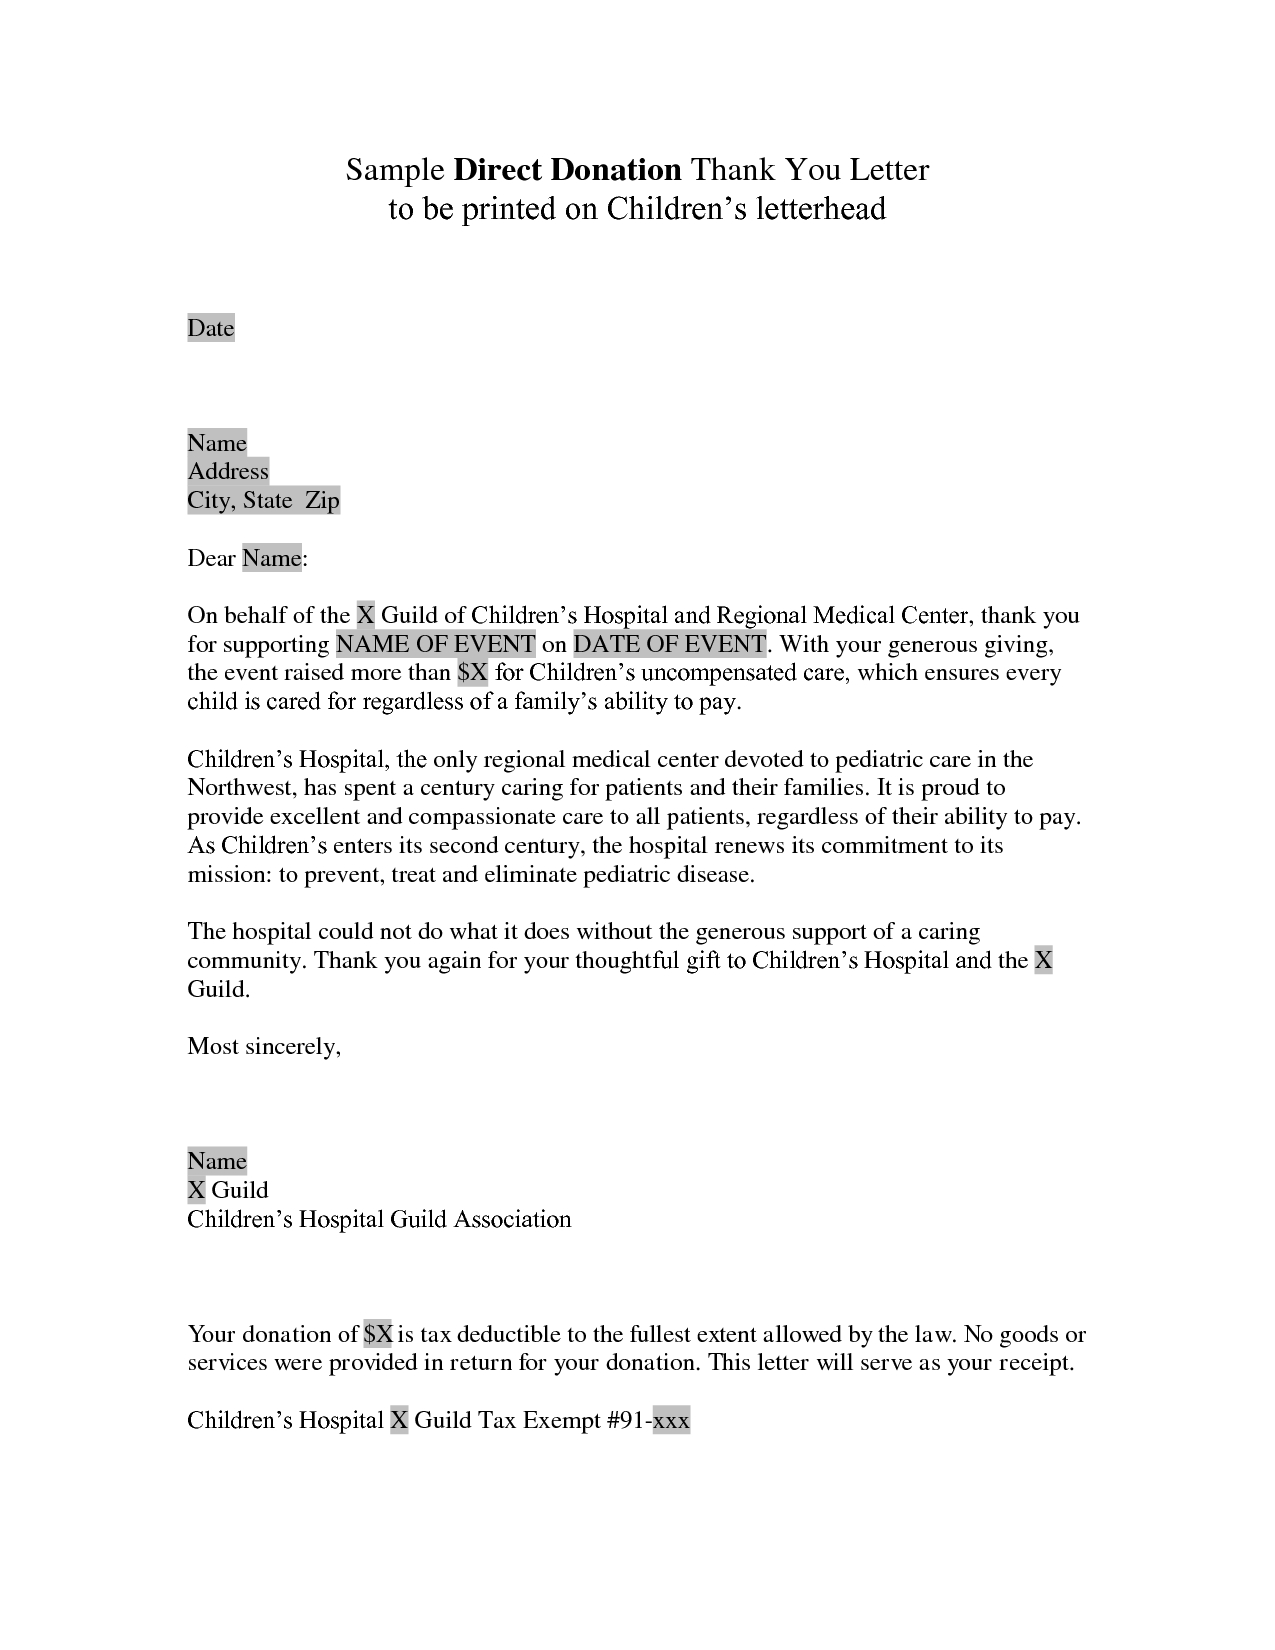 Sponsorship Letter Template for Donations - Donor Thank You Letter Sample